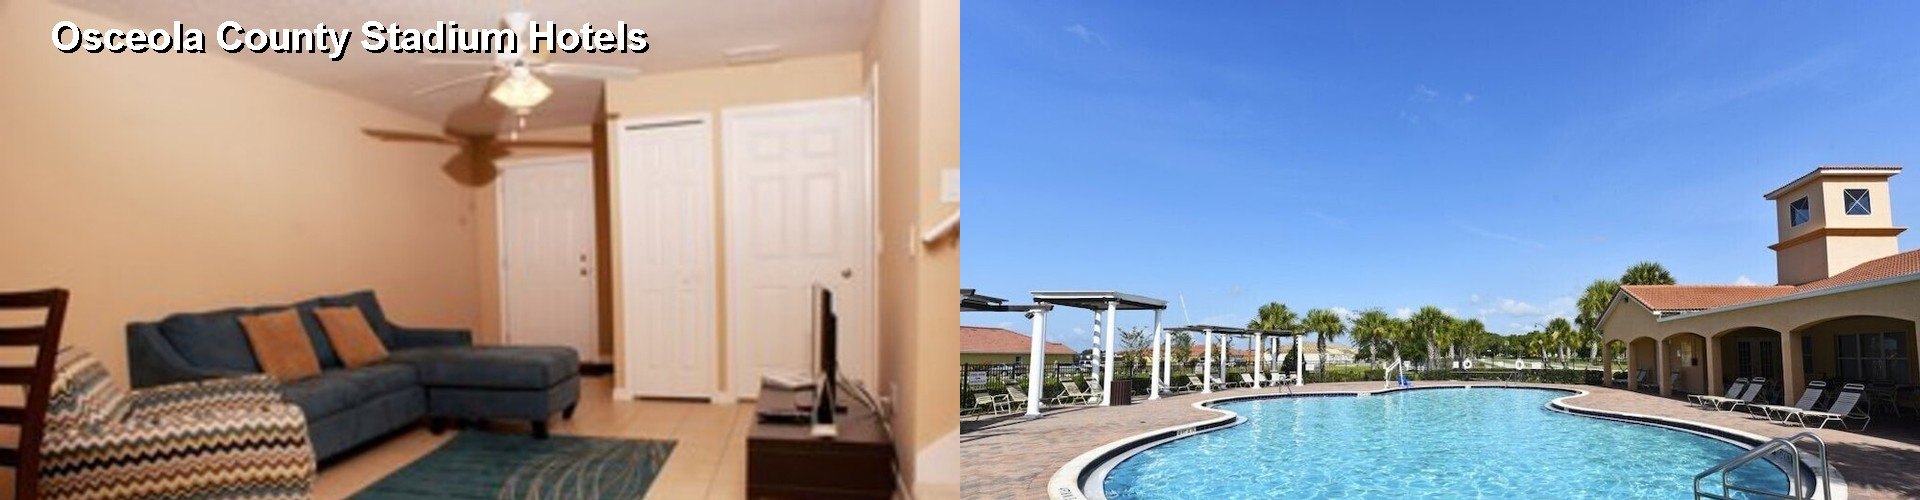 3 Best Hotels near Osceola County Stadium